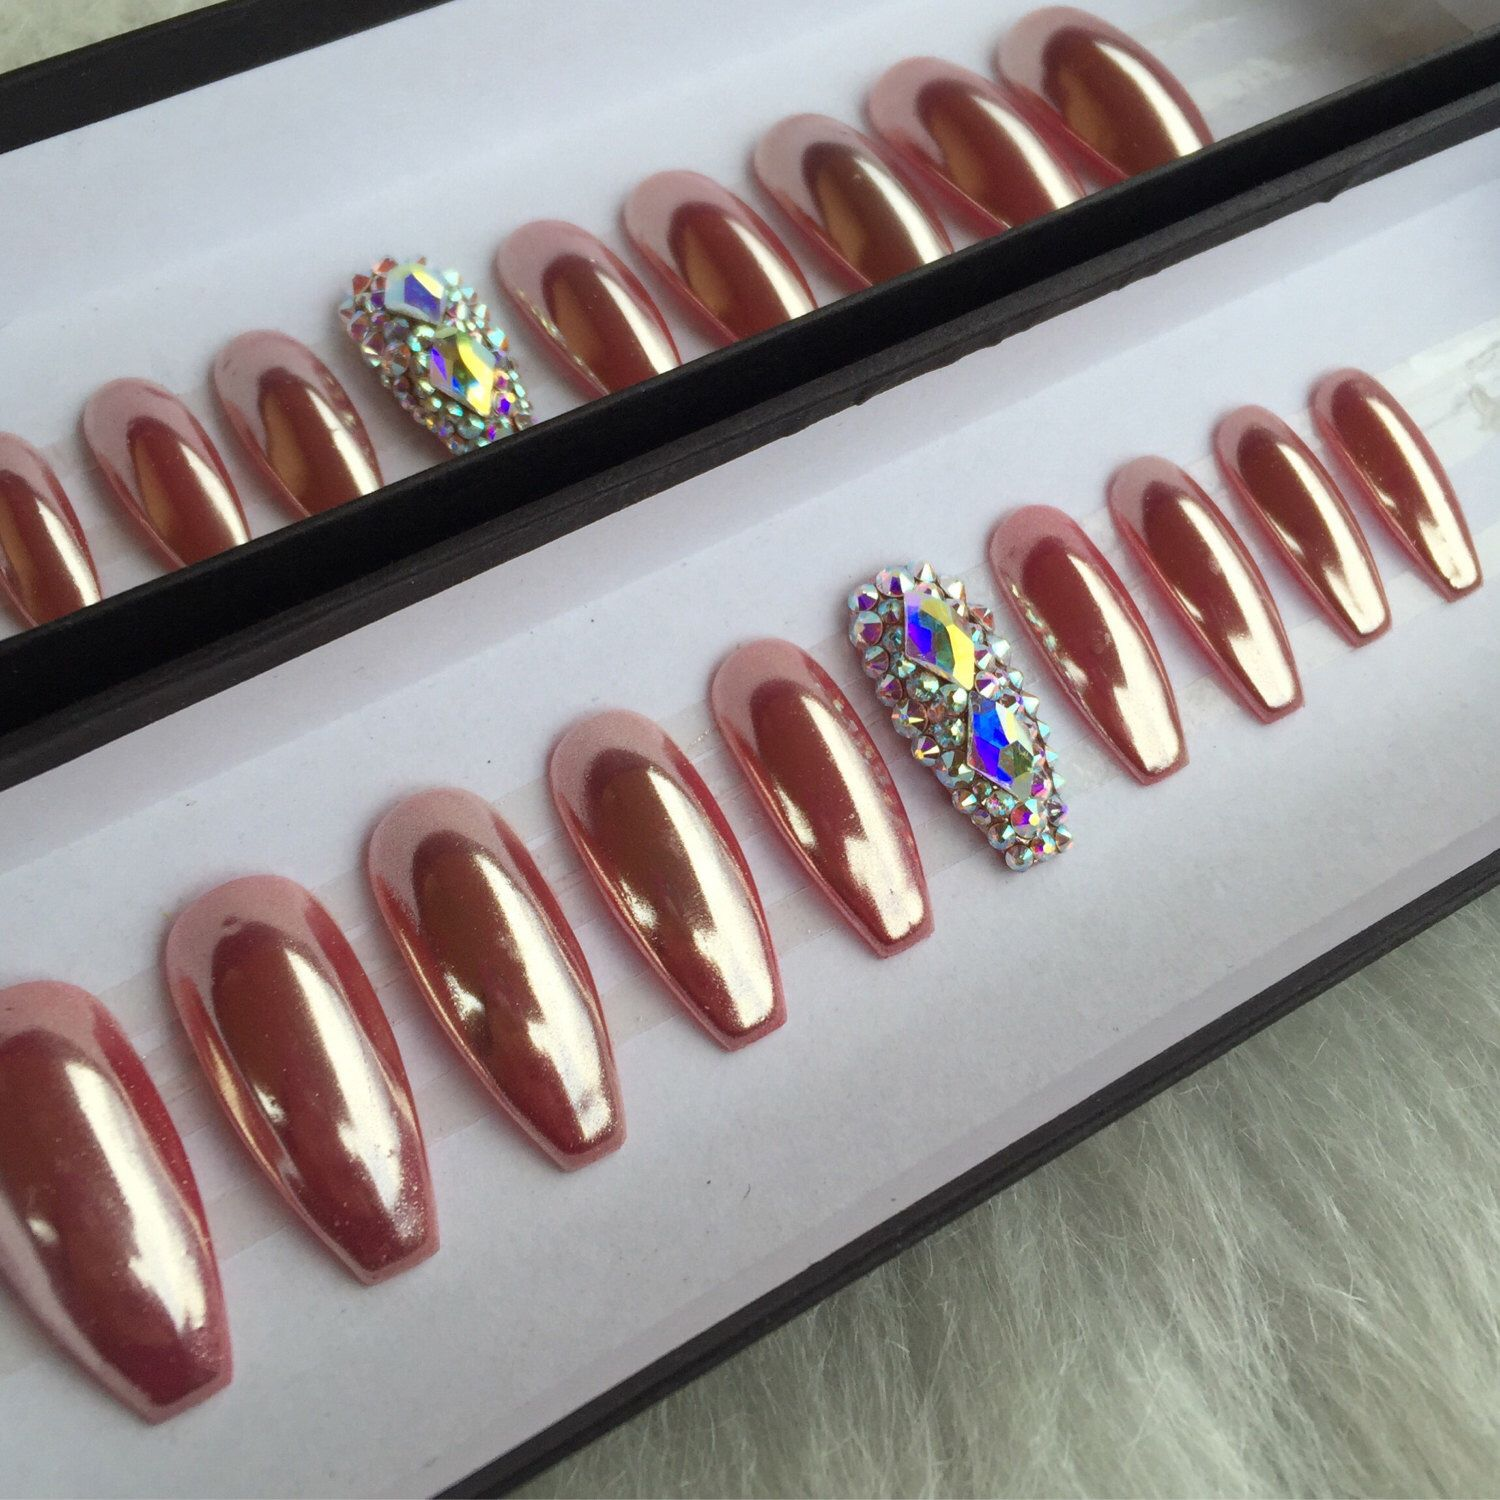 Rose Gold Chrome Press OnNails with 2 Accent Swarovski Nails | Any ...